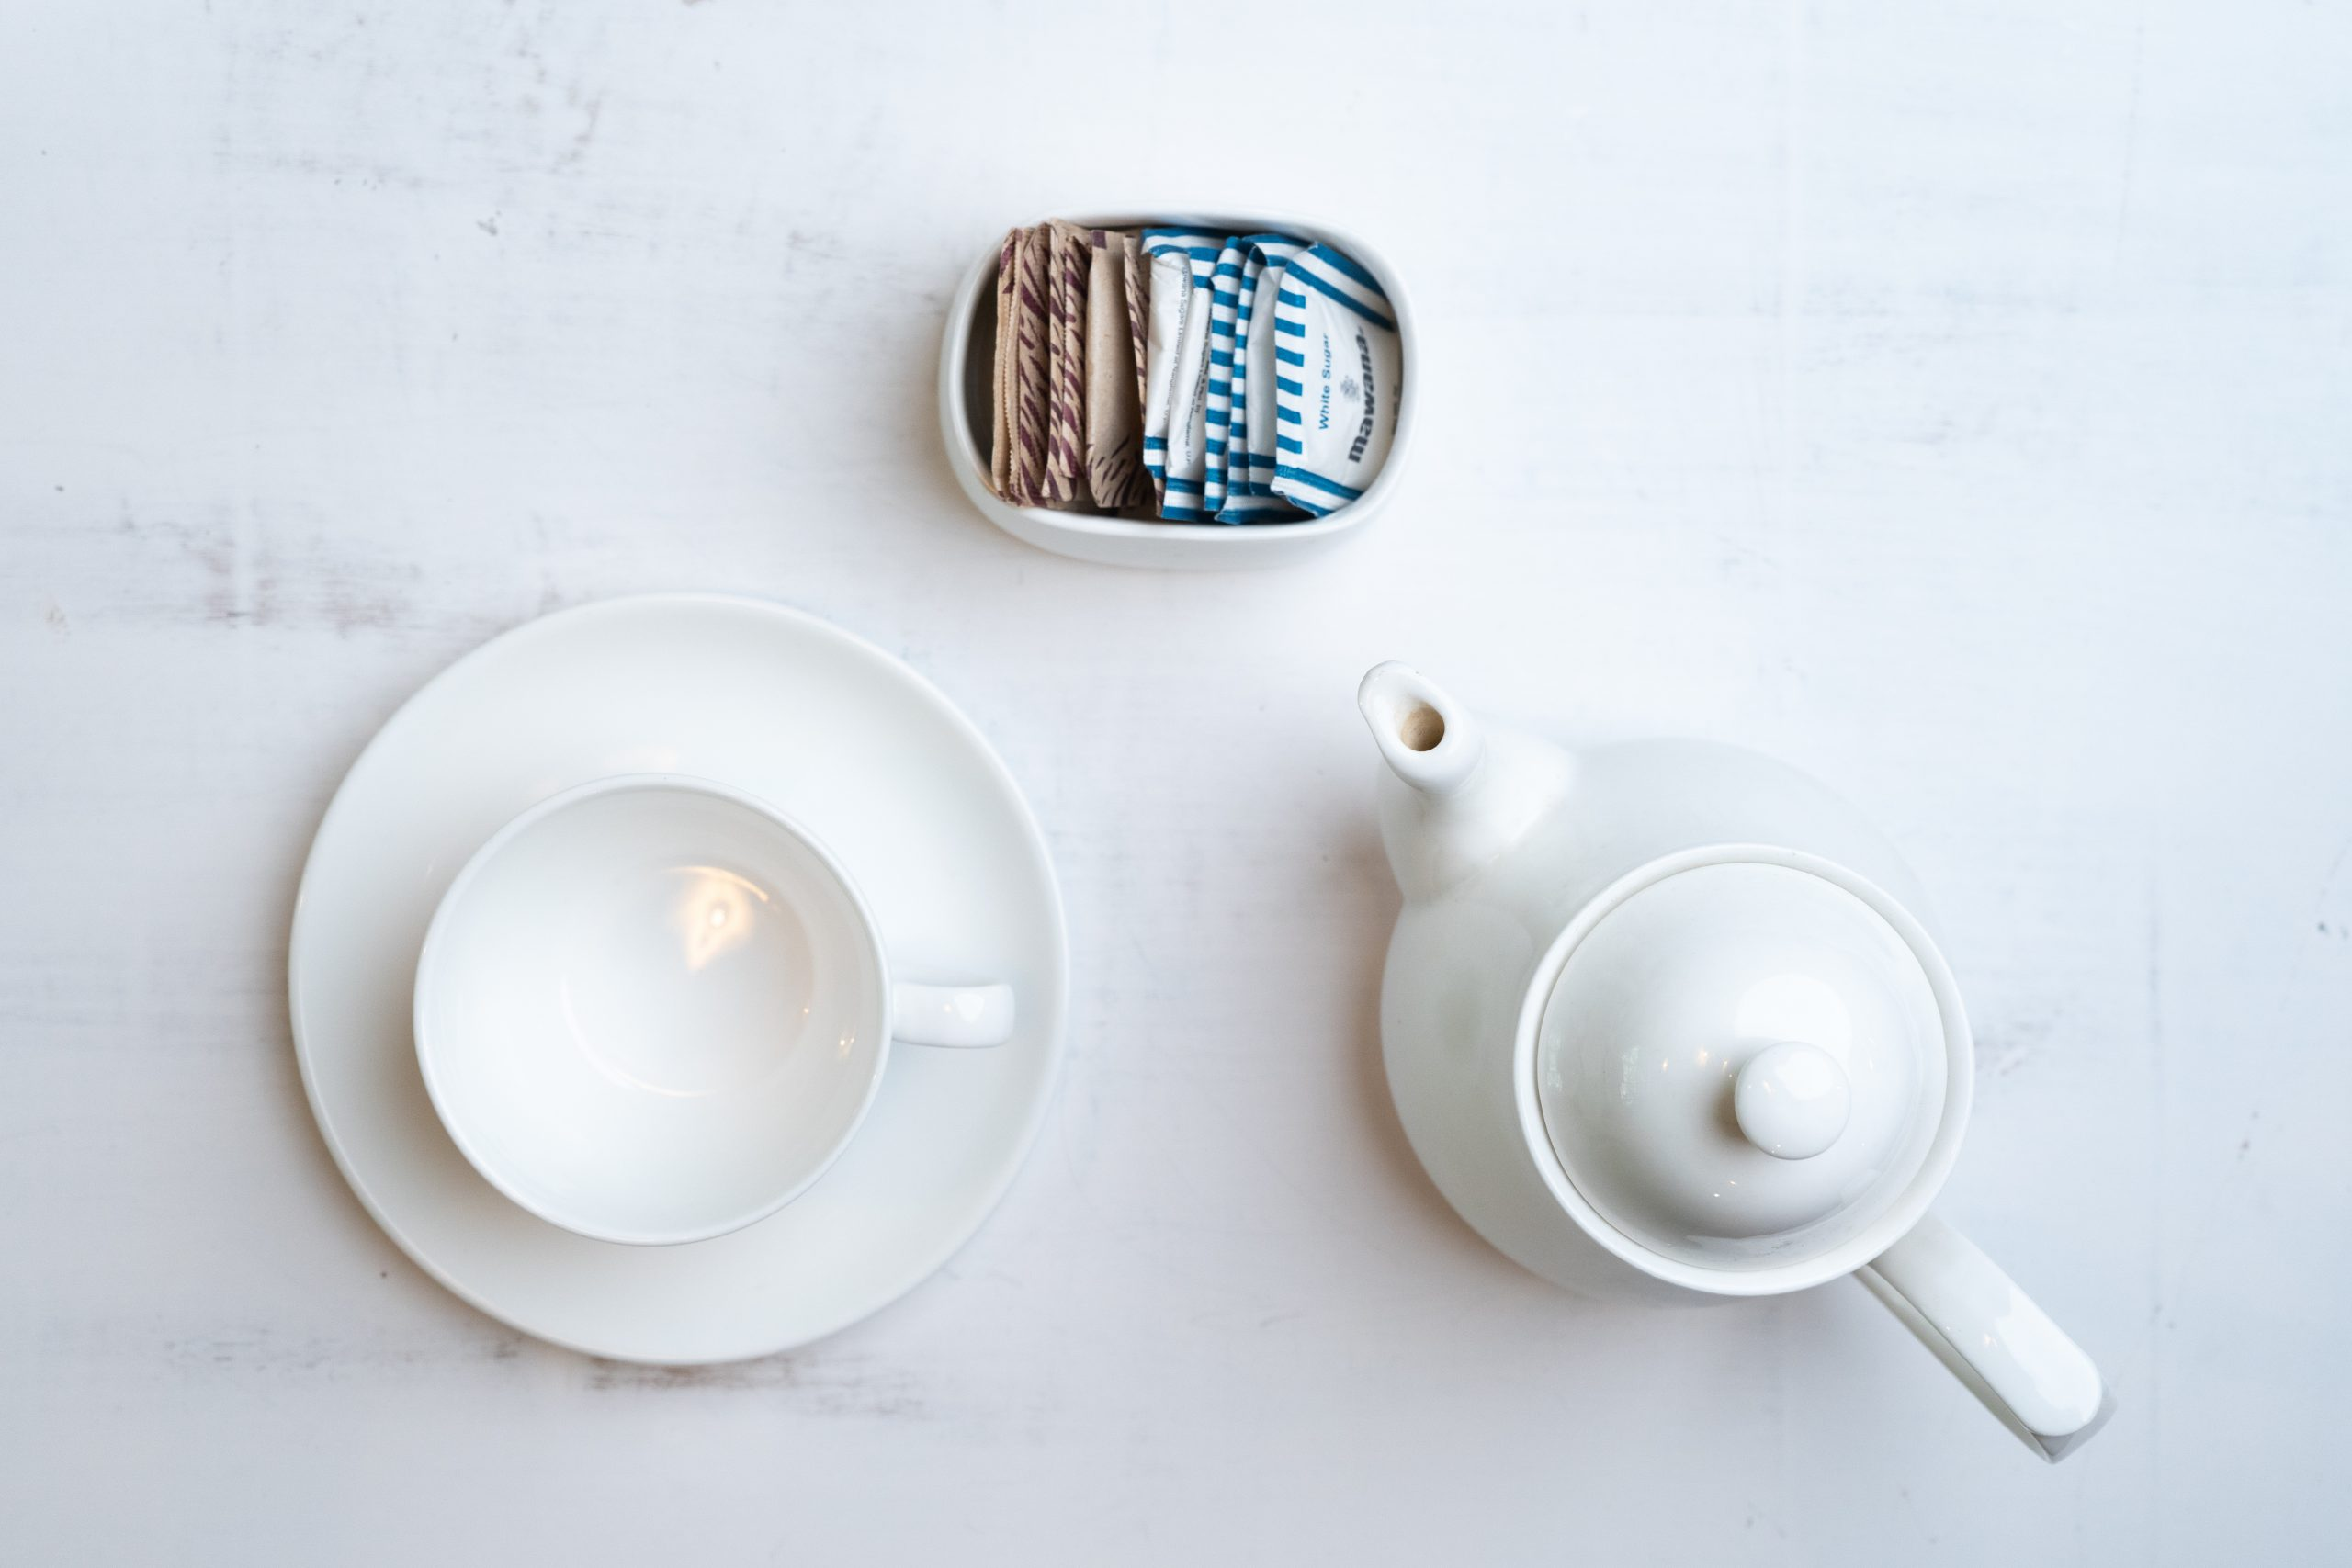 Kettle, tea cup and sugar packets